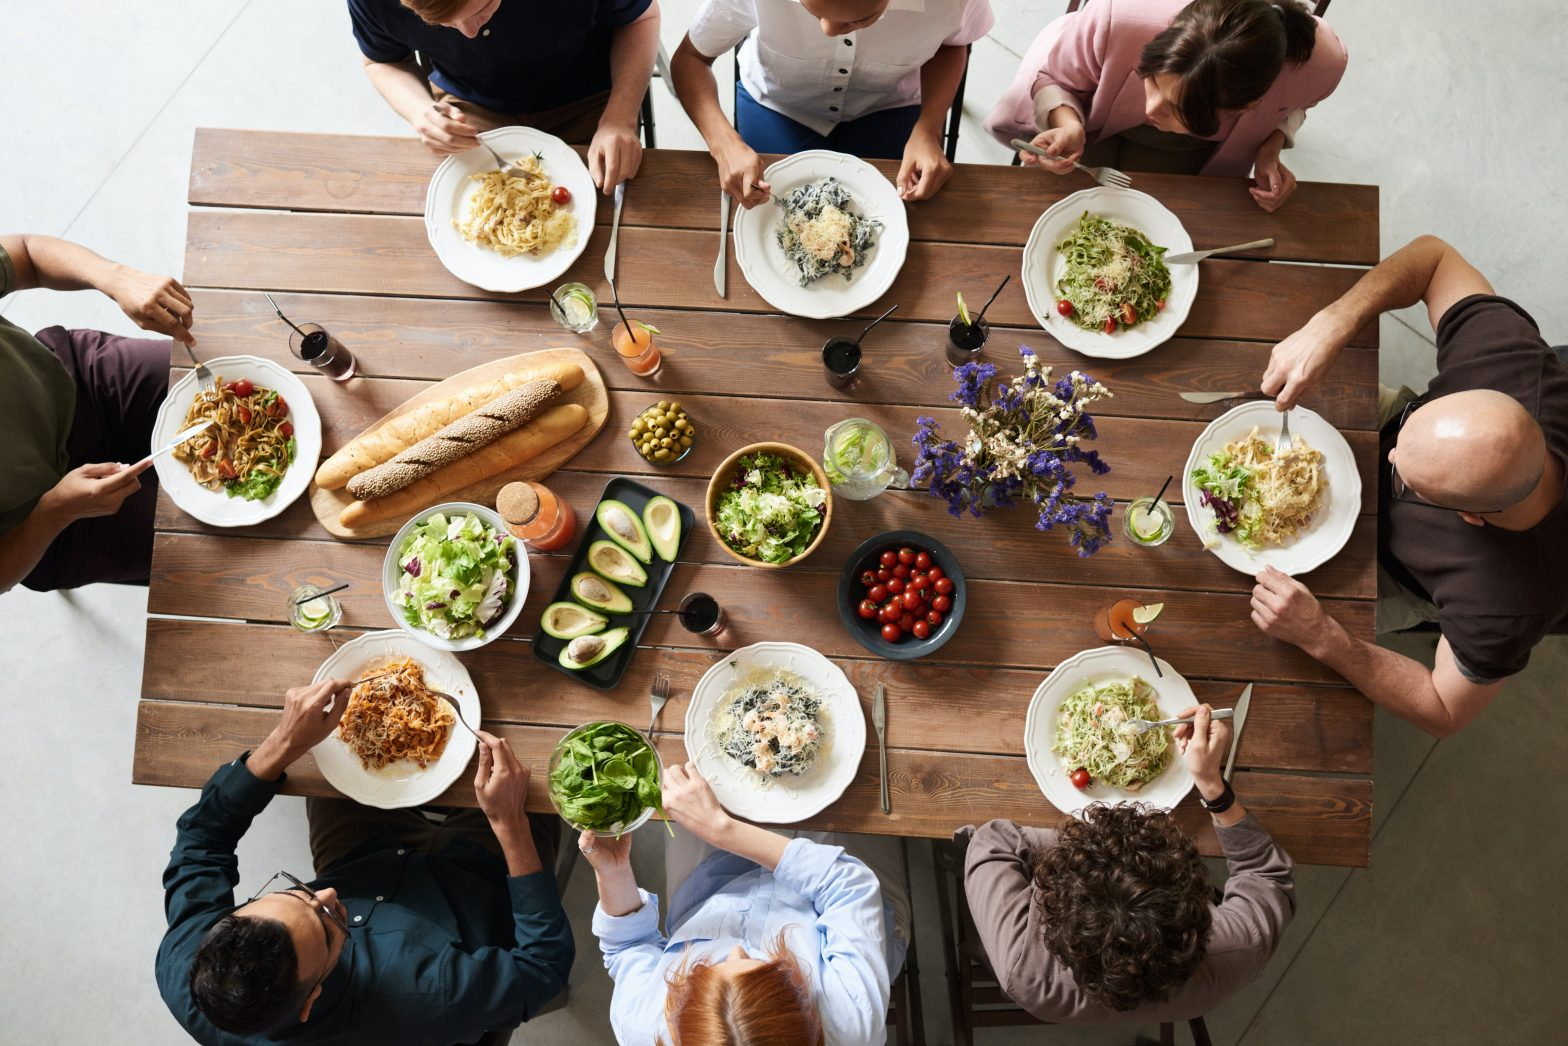 Group of colleagues seated at a table enjoying healthy meals together